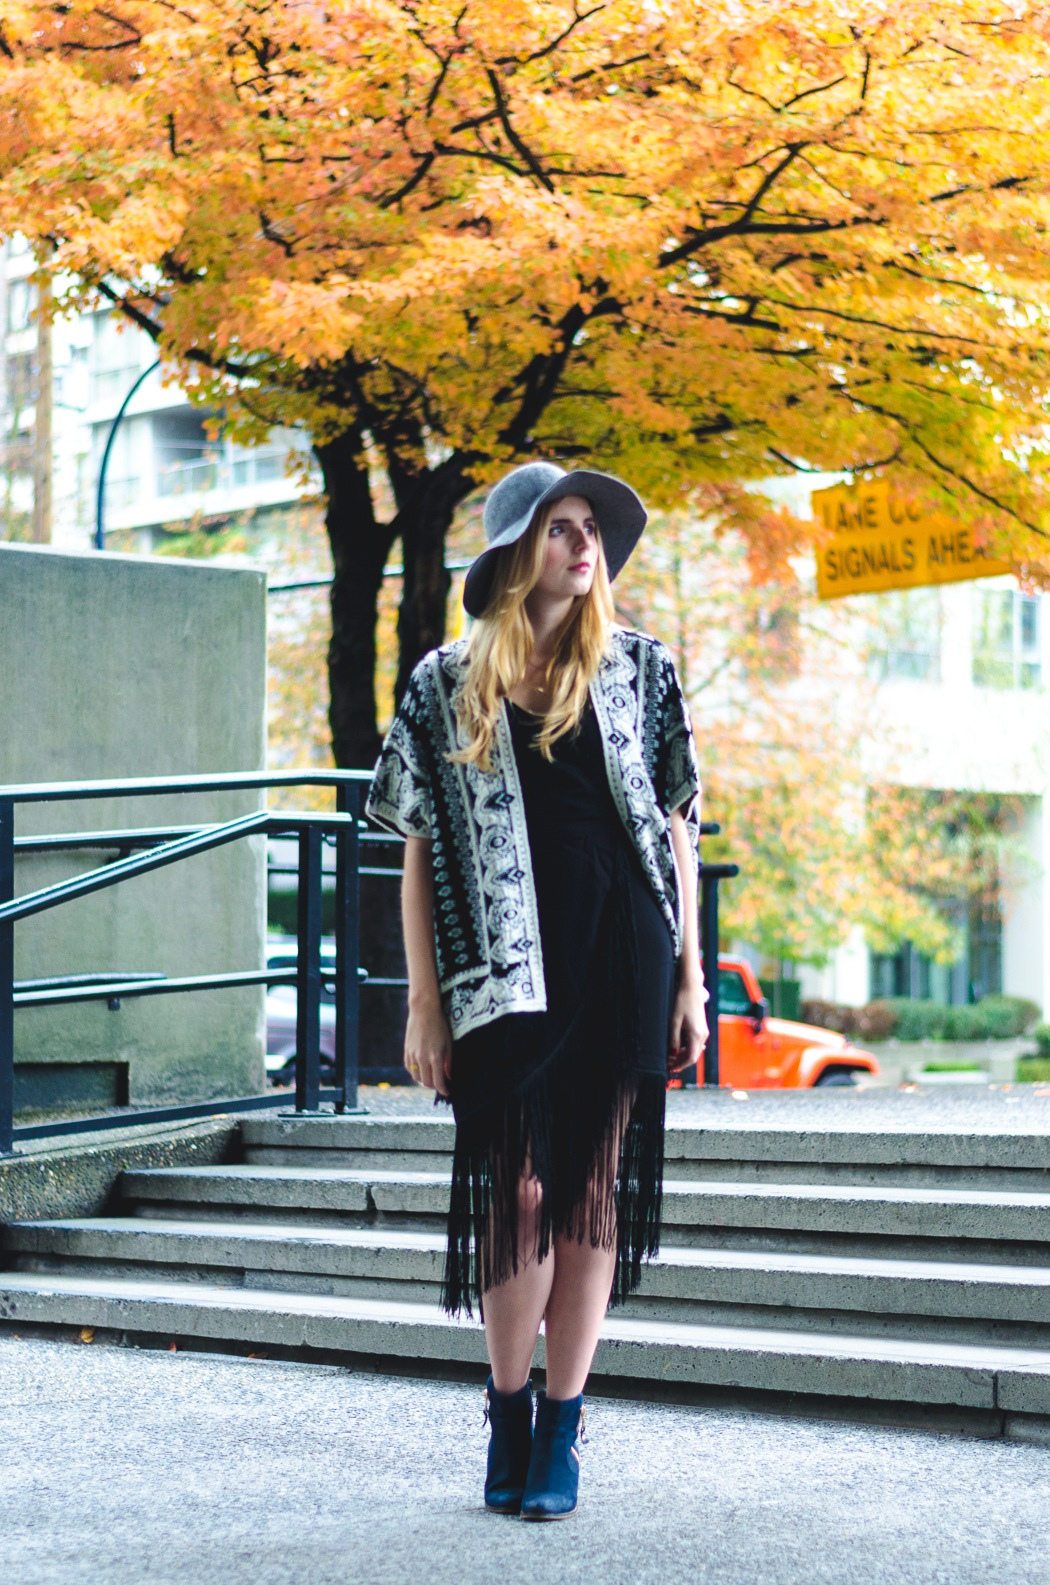 the urban umbrella style blog, vancouver style blog, vancouver style blogger, vancouver fashion blog, vancouver lifestyle blog, vancouver health blog, vancouver fitness blog, vancouver travel blog, canadian fashion blog, canadian style blog, canadian lifestyle blog, canadian health blog, canadian fitness blog, canadian travel blog, bree aylwin, how to style fringe, fringe dress, dynamite clothing review, holiday outfit ideas, how to style a poncho, dynamite clothing jacquard poncho, dynamite clothing fringe dress, best health blogs, best travel blogs, top fashion blogs, top style blogs, top lifestyle blogs, top fitness blogs, top health blogs, top travel blogs